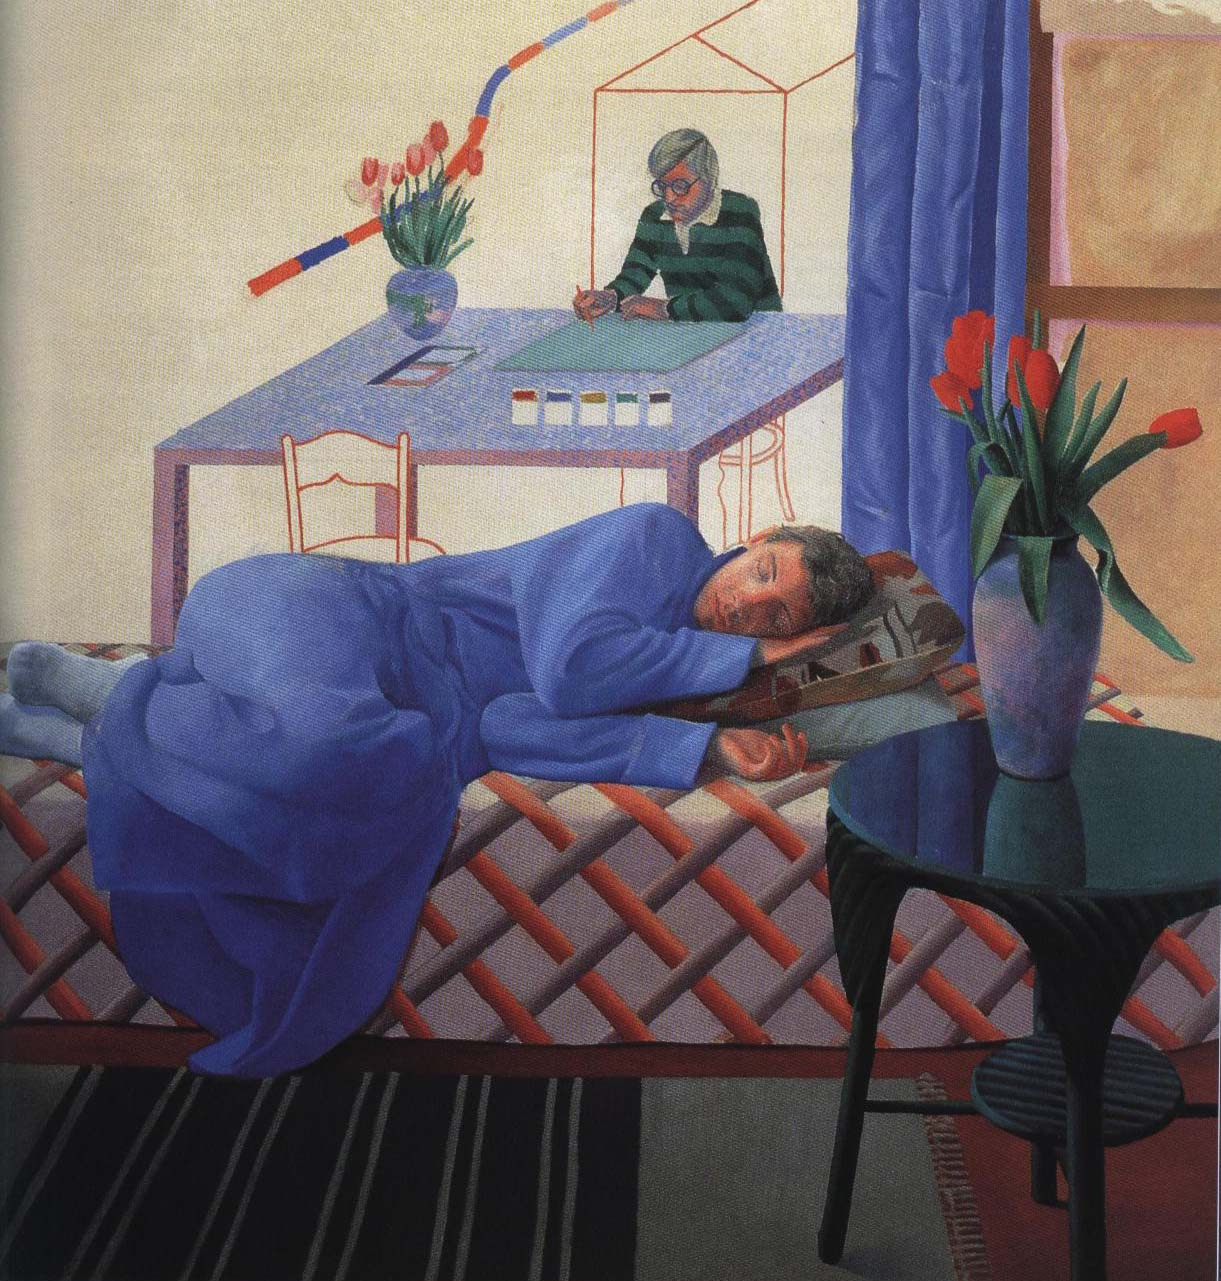 Model with Unfinished Self Portrait | David Hockney 1977 | Oil Painting